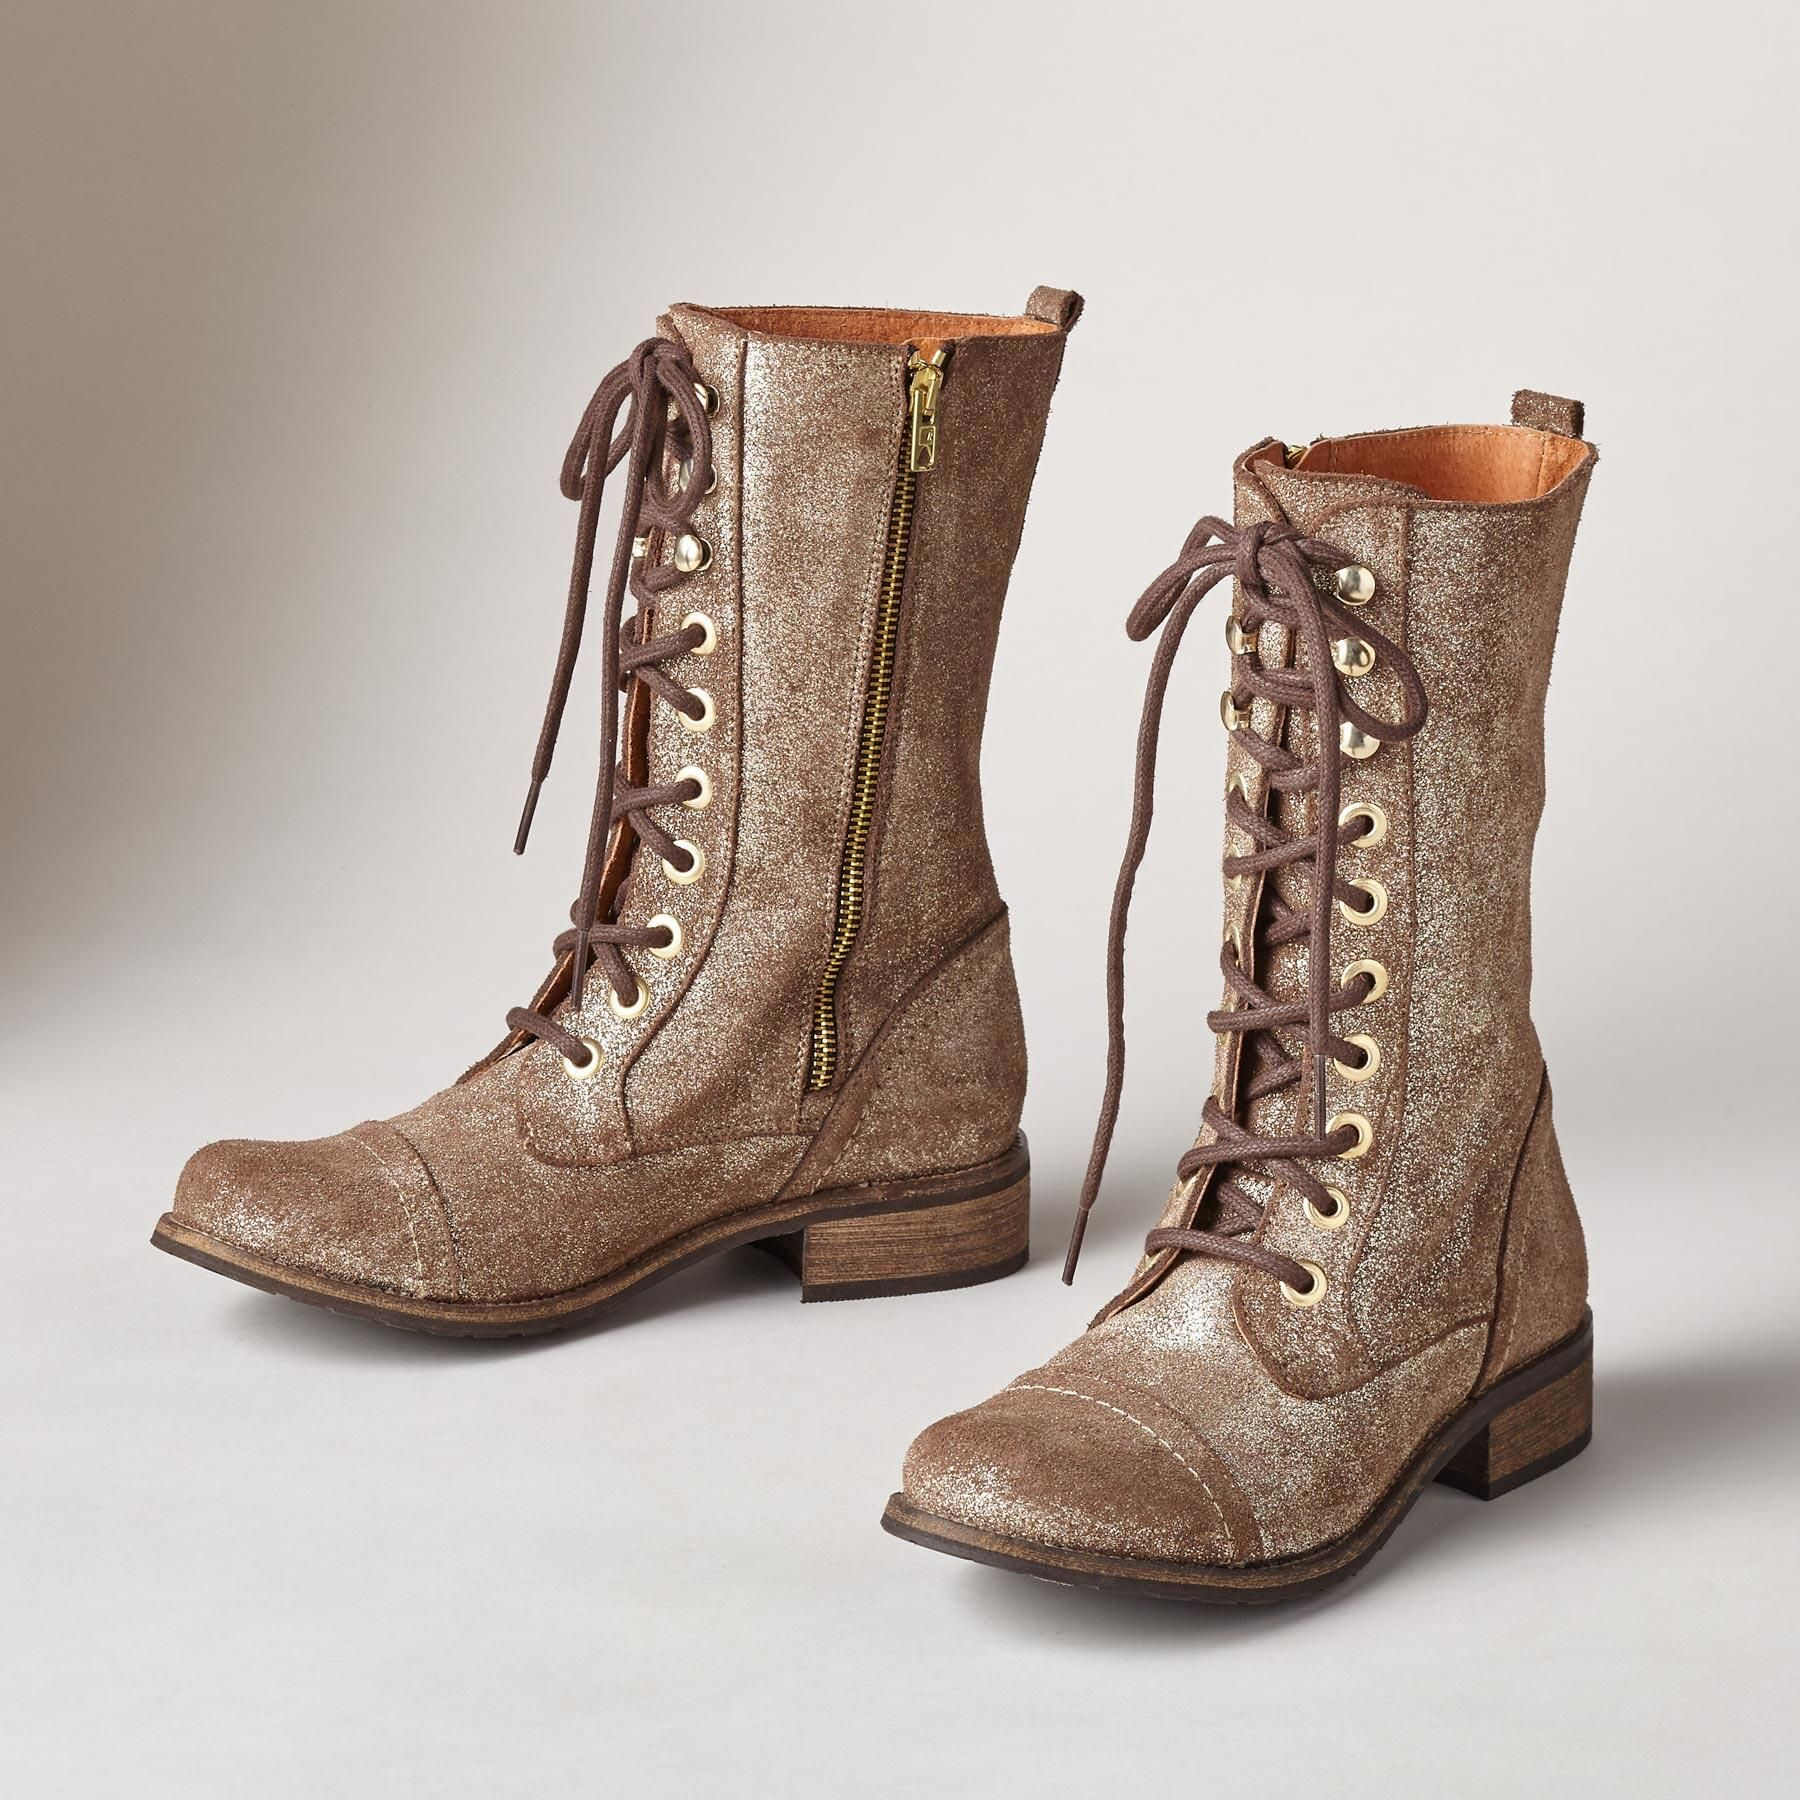 TAROT BOOTS  These vintage shimmer suede combat boots seem dusted with a  touch